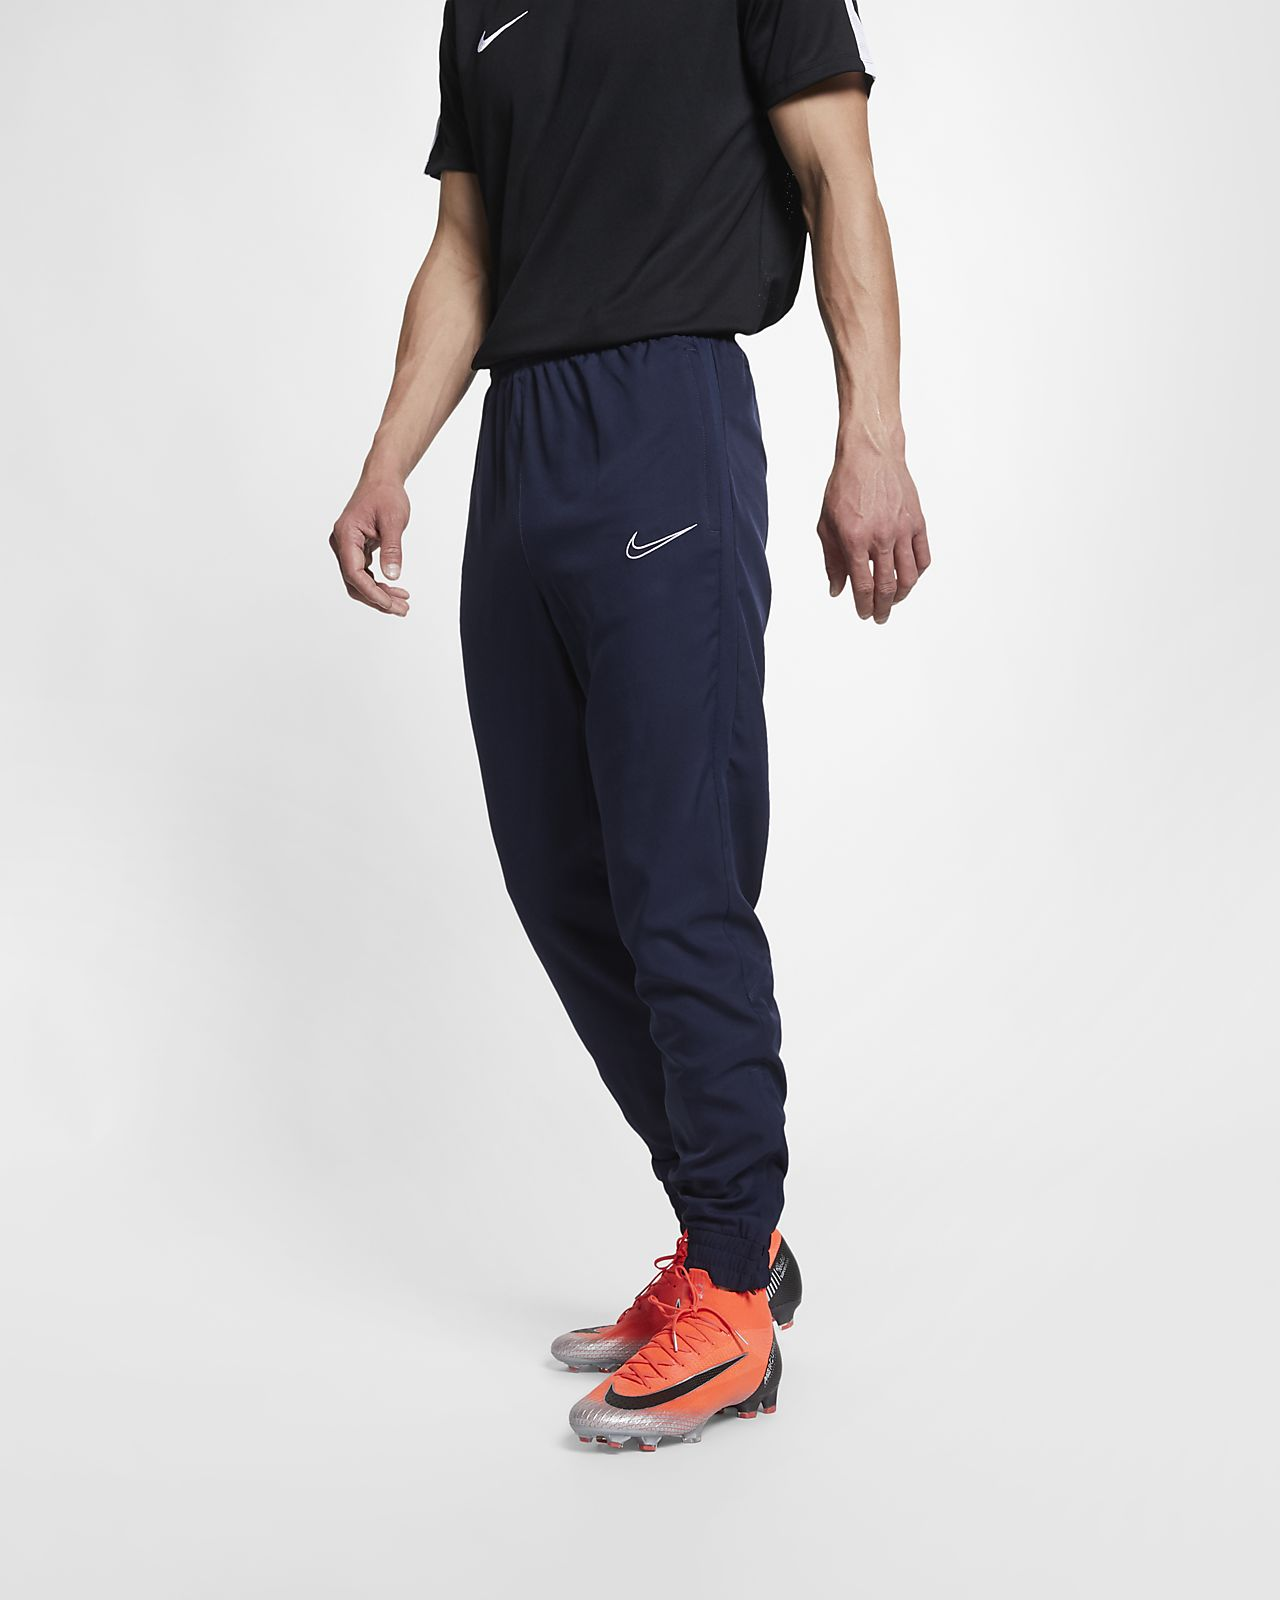 418ec775 Nike Dri-FIT Academy Men's Football Pants. Nike.com GB